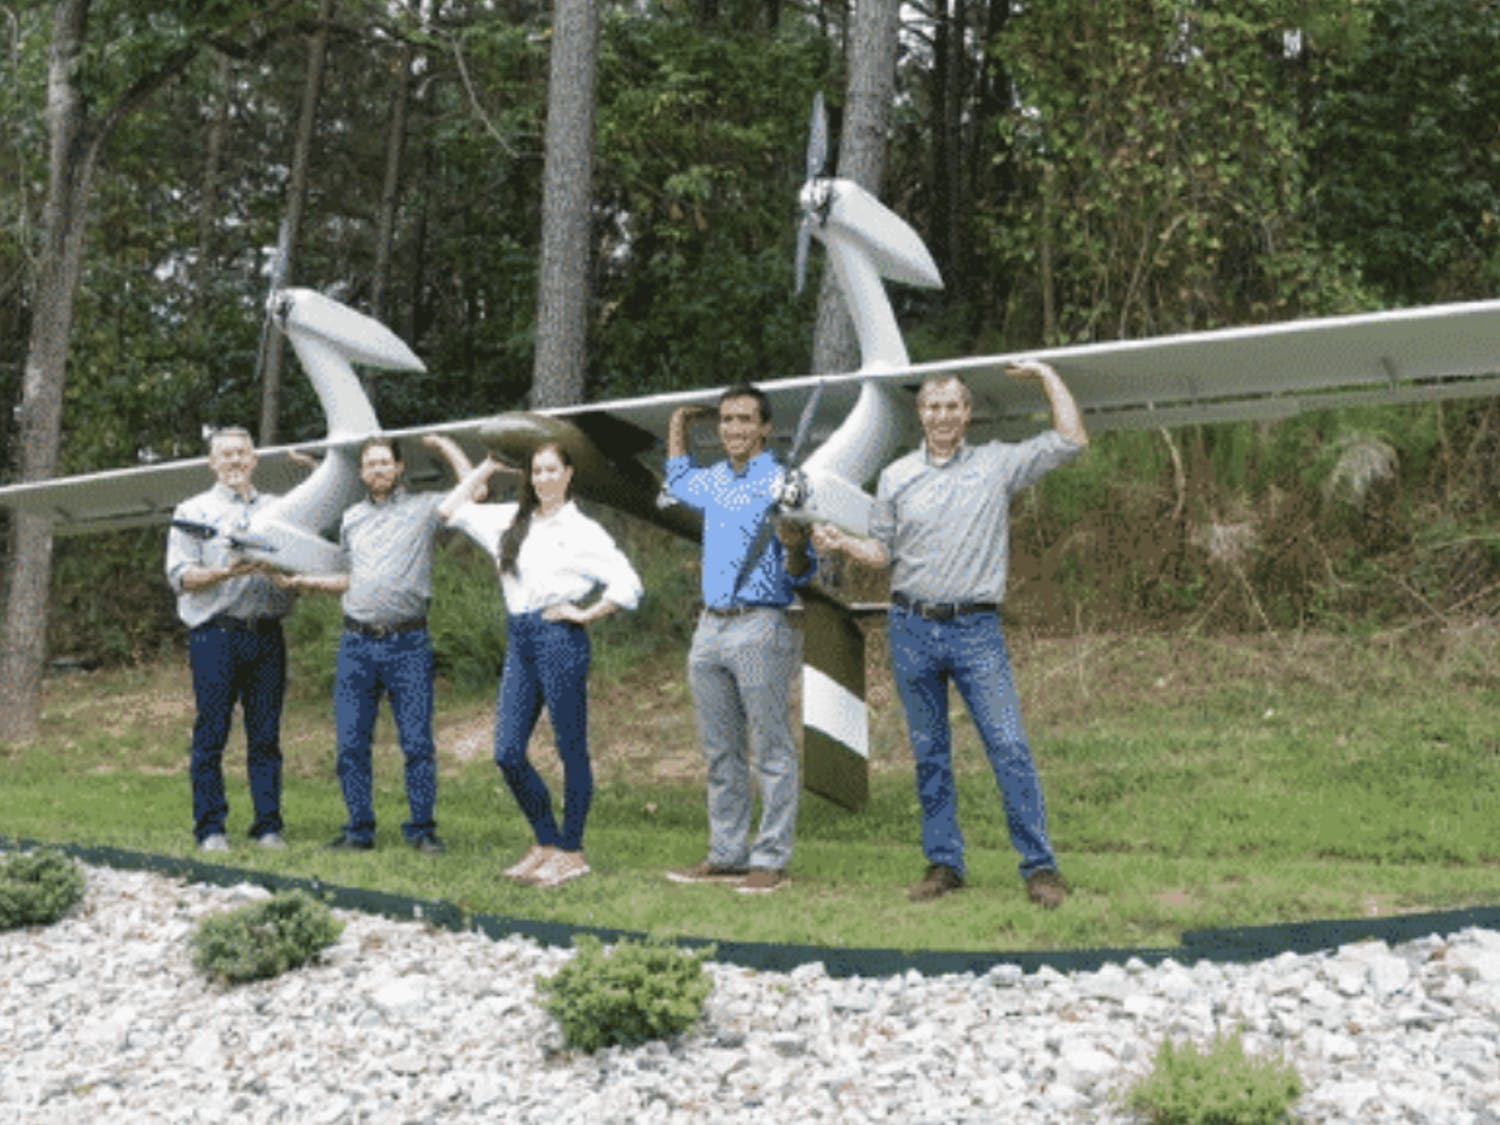 Durham is welcoming sustainable energy company Windlift to the area and hoping to expand jobs and energy sources.